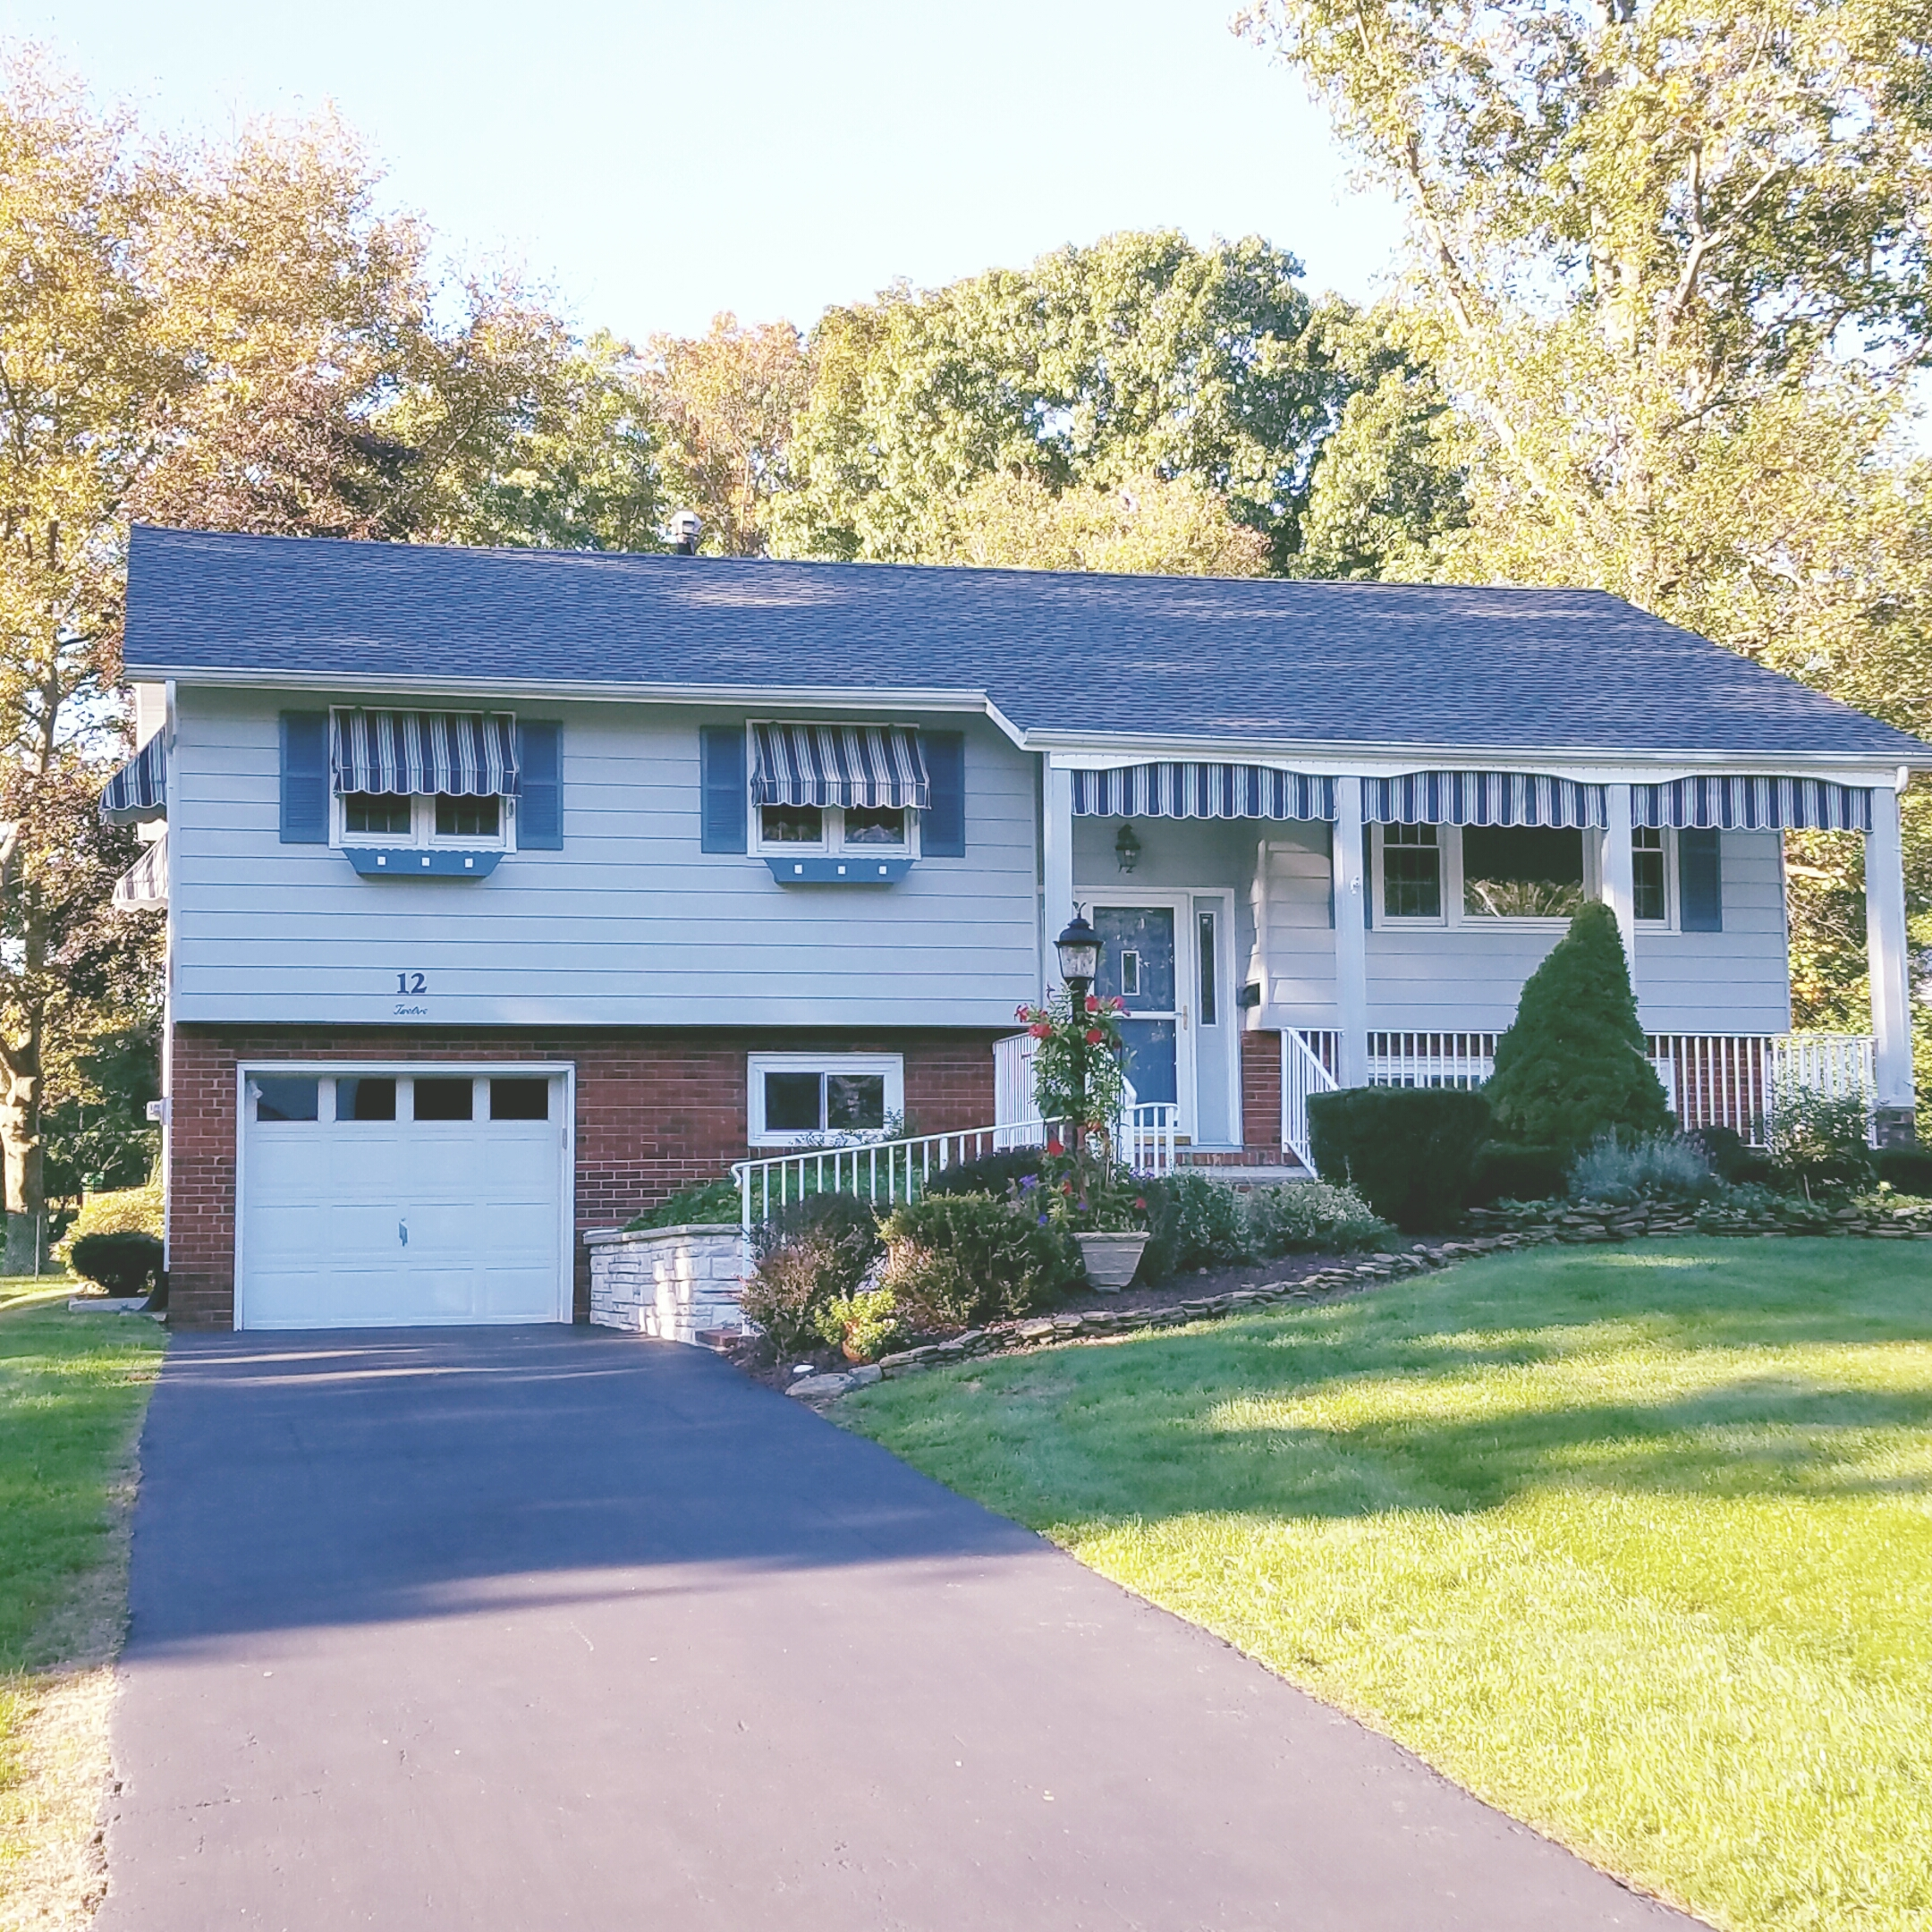 12 Heather Drive, Manalapan<br />Sold $432,450